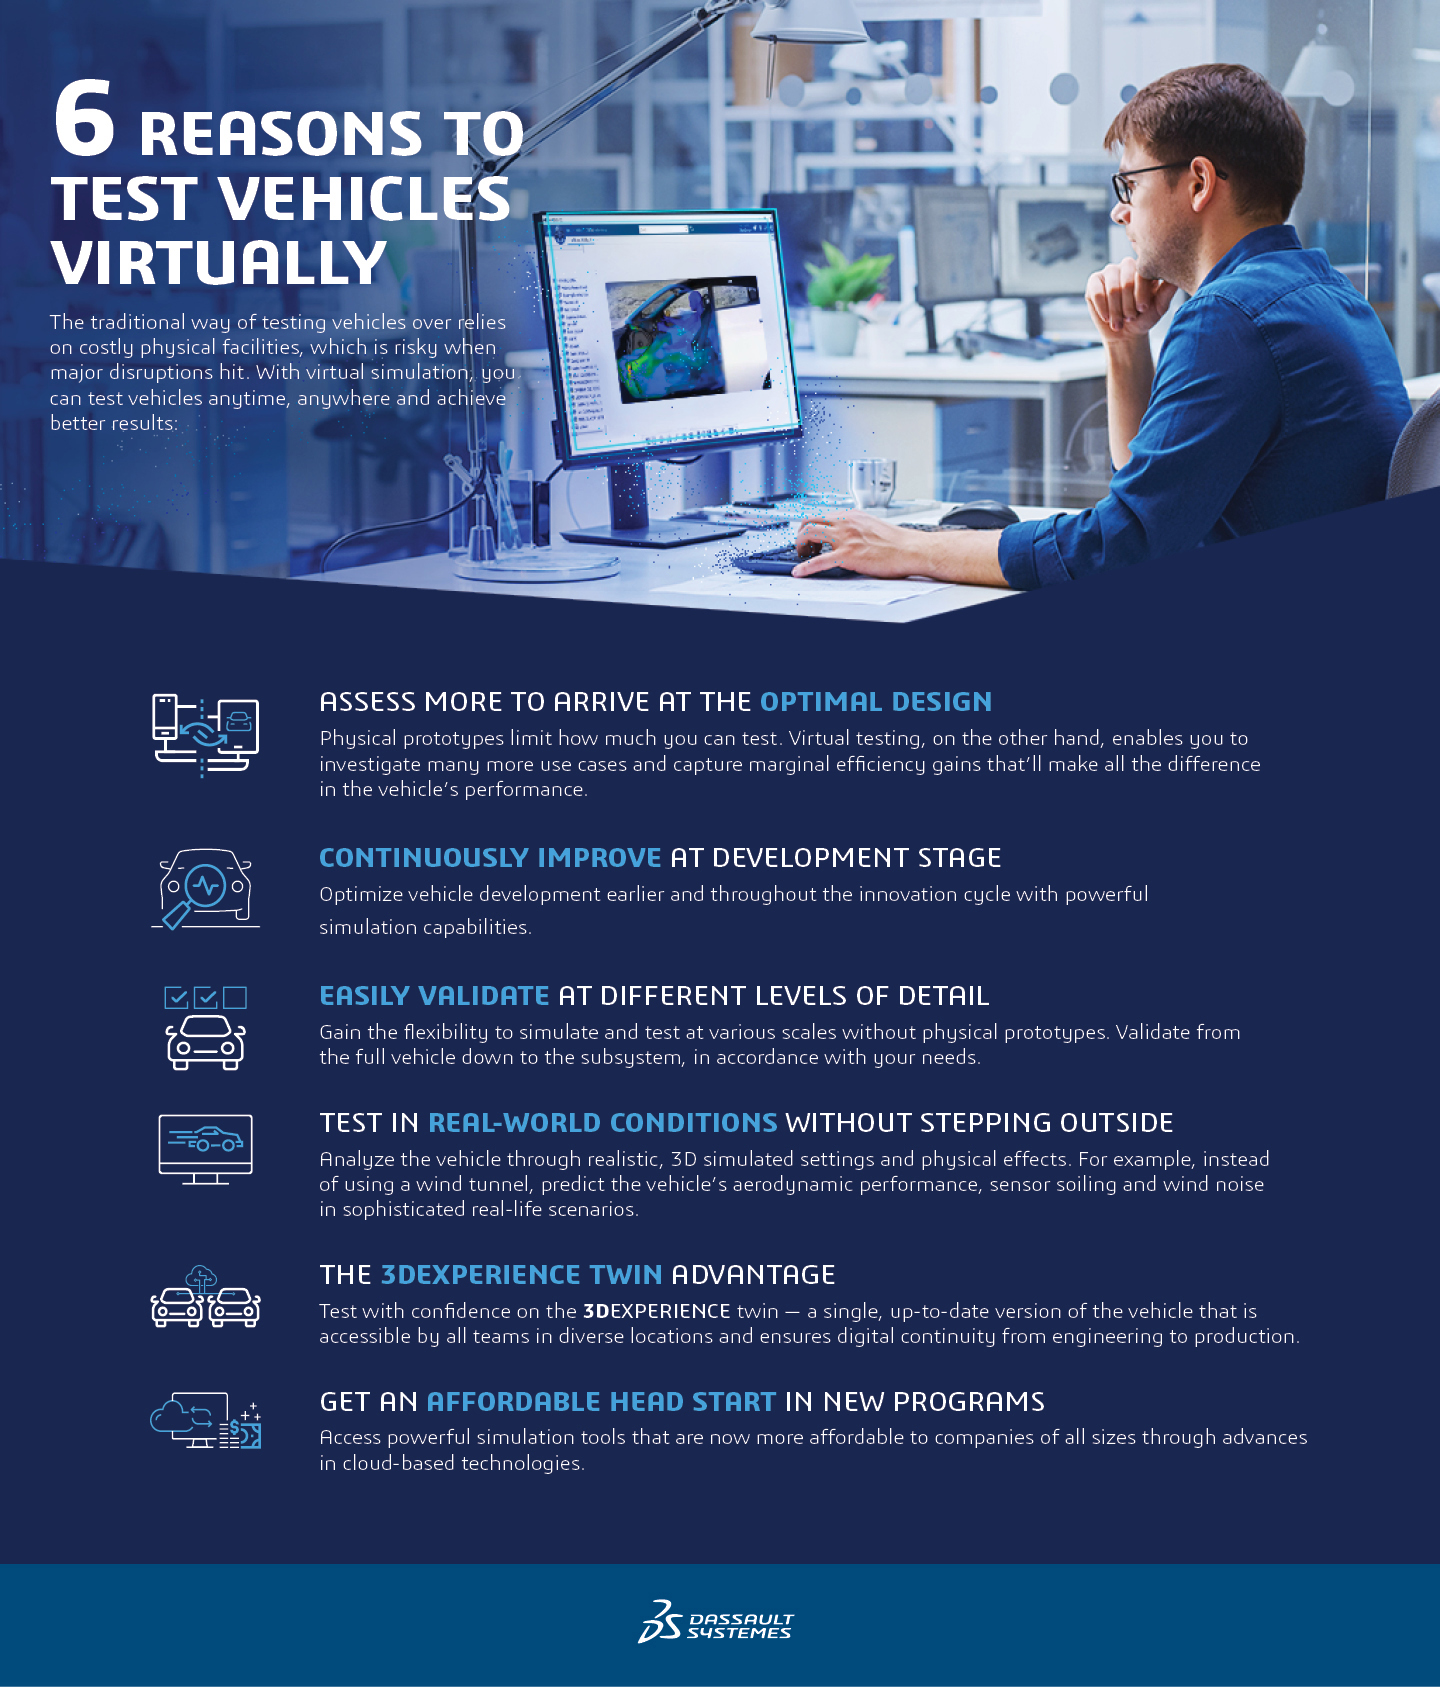 6 Ways to Test Vehicles Virtually Listicle > Desktop Image > Dassault Systèmes